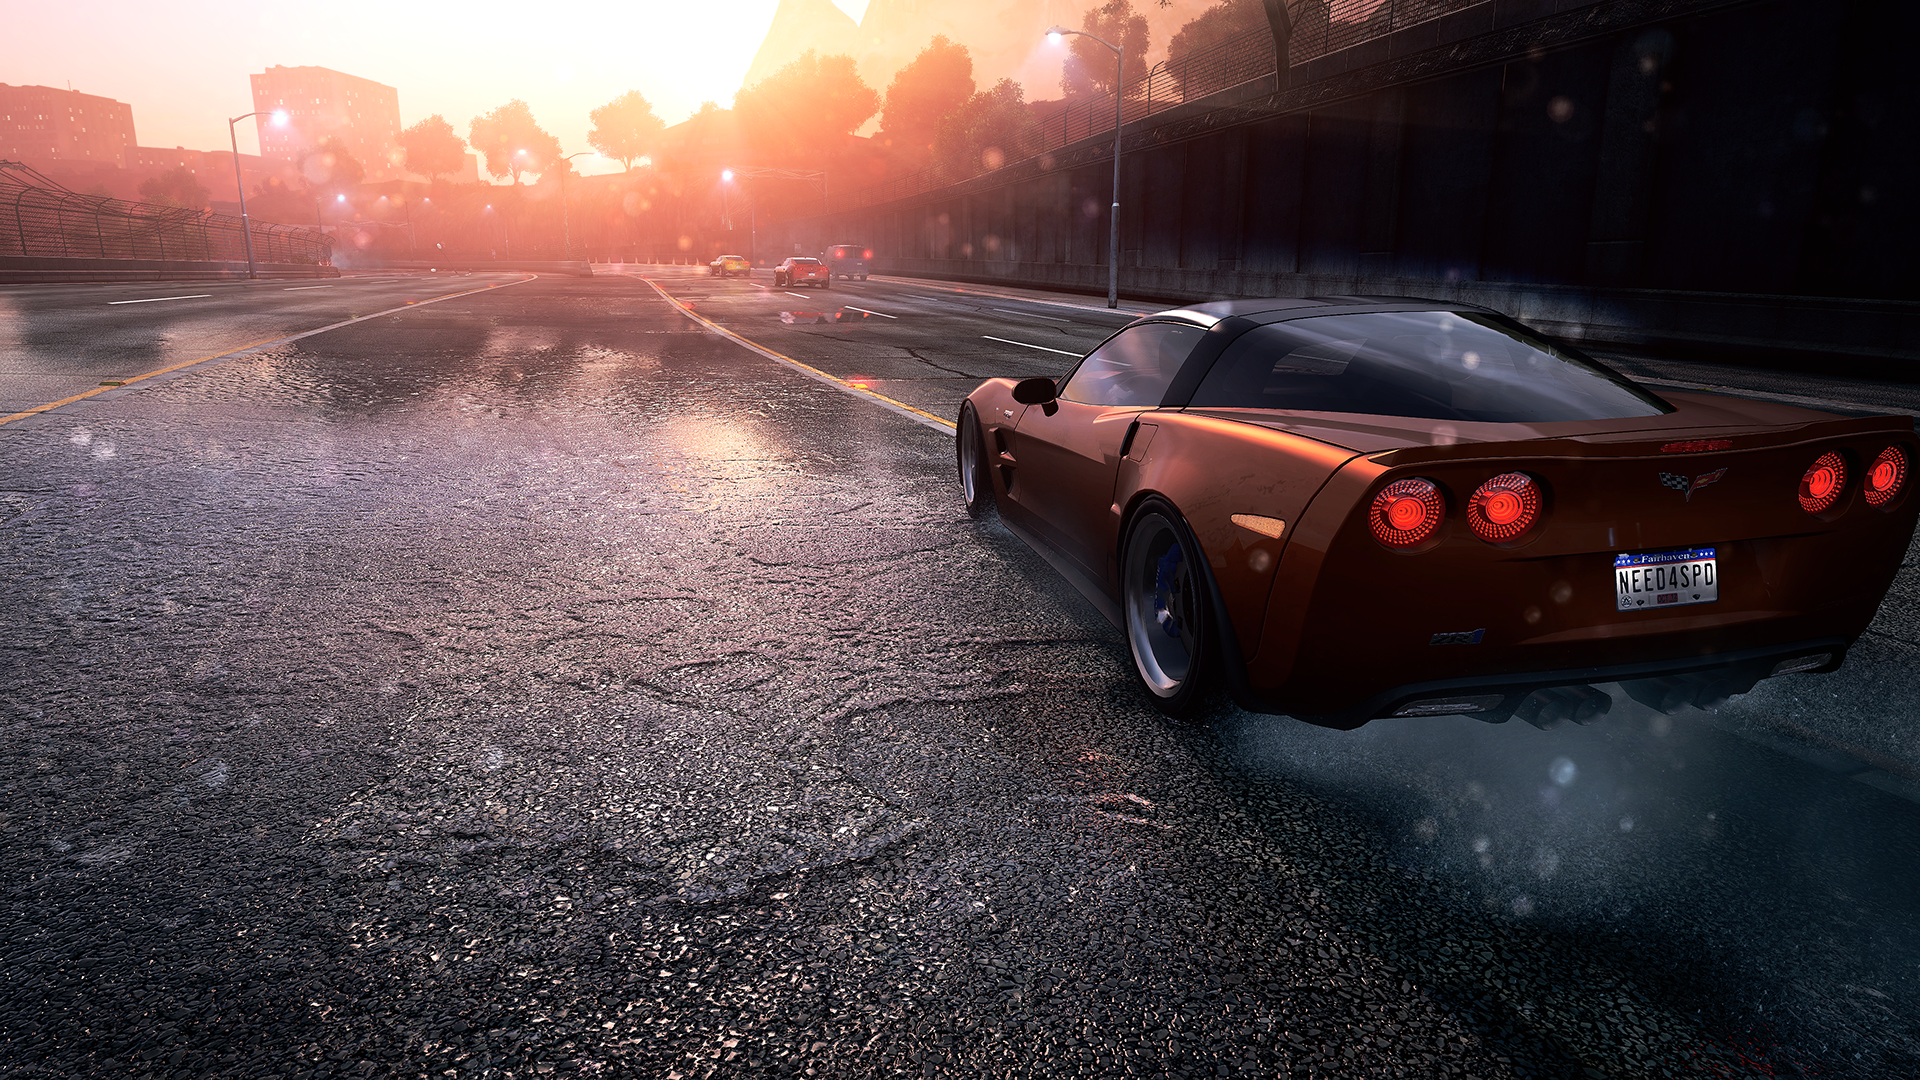 53 Need For Speed Most Wanted HD Wallpapers Background Images 1920x1080